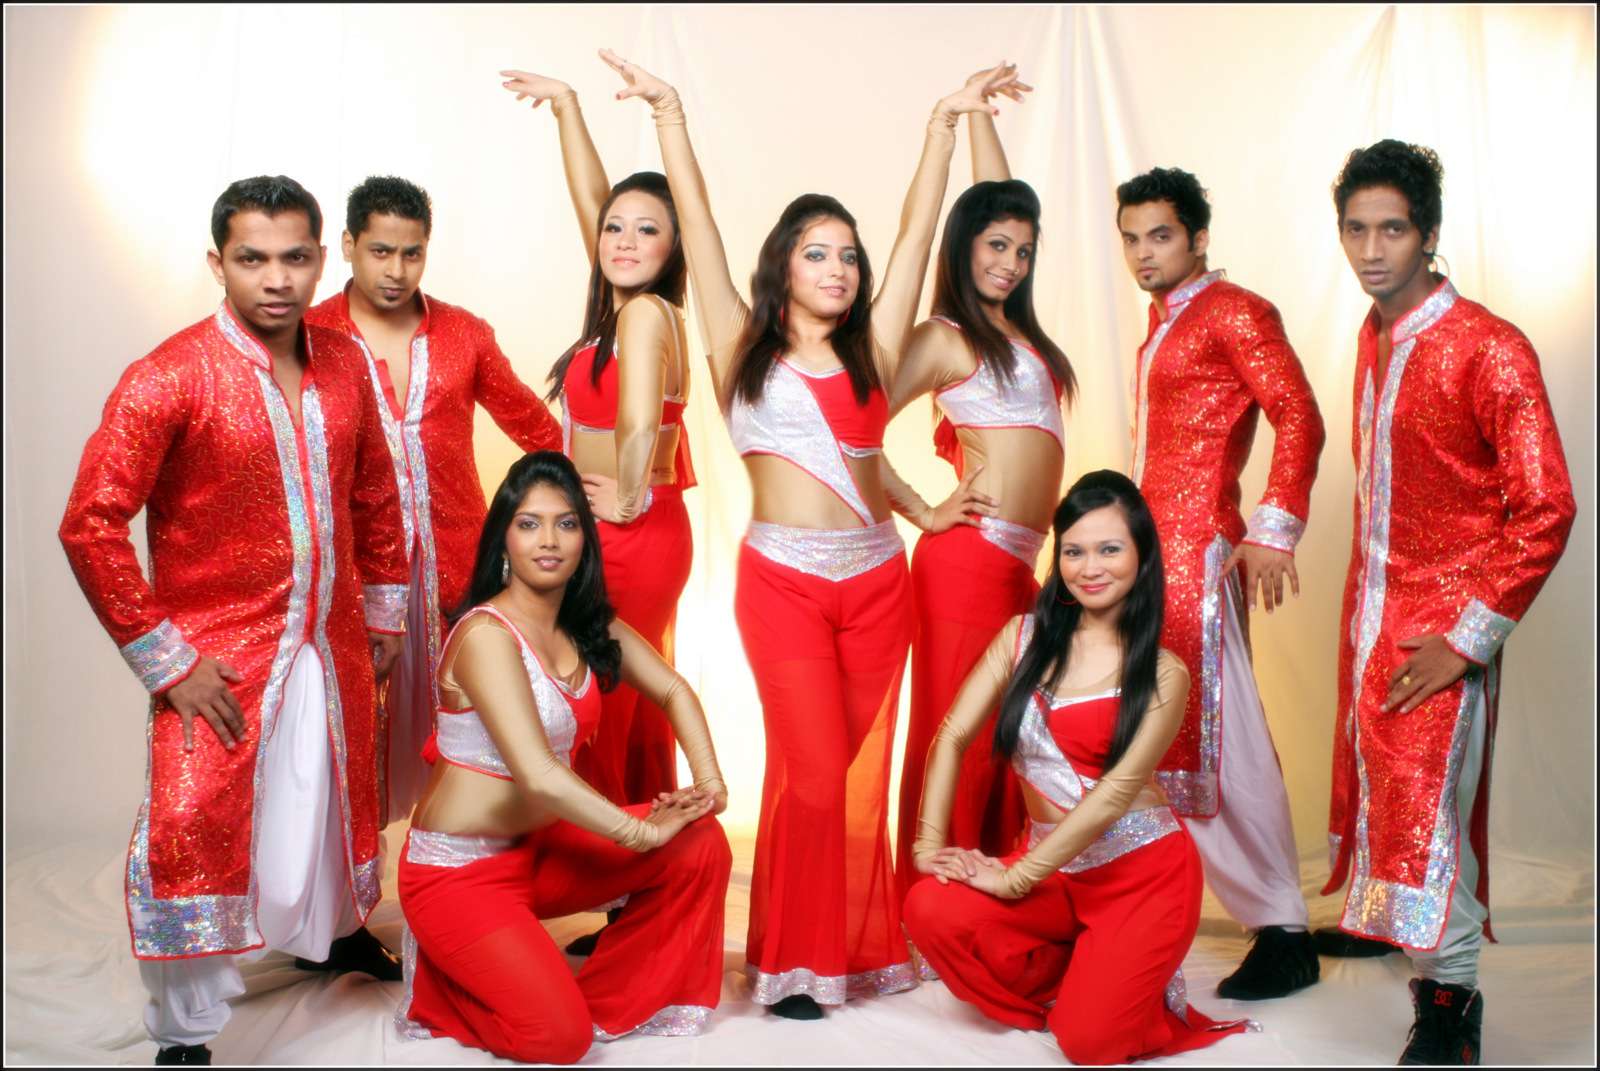 Hire professional dancers in dubai